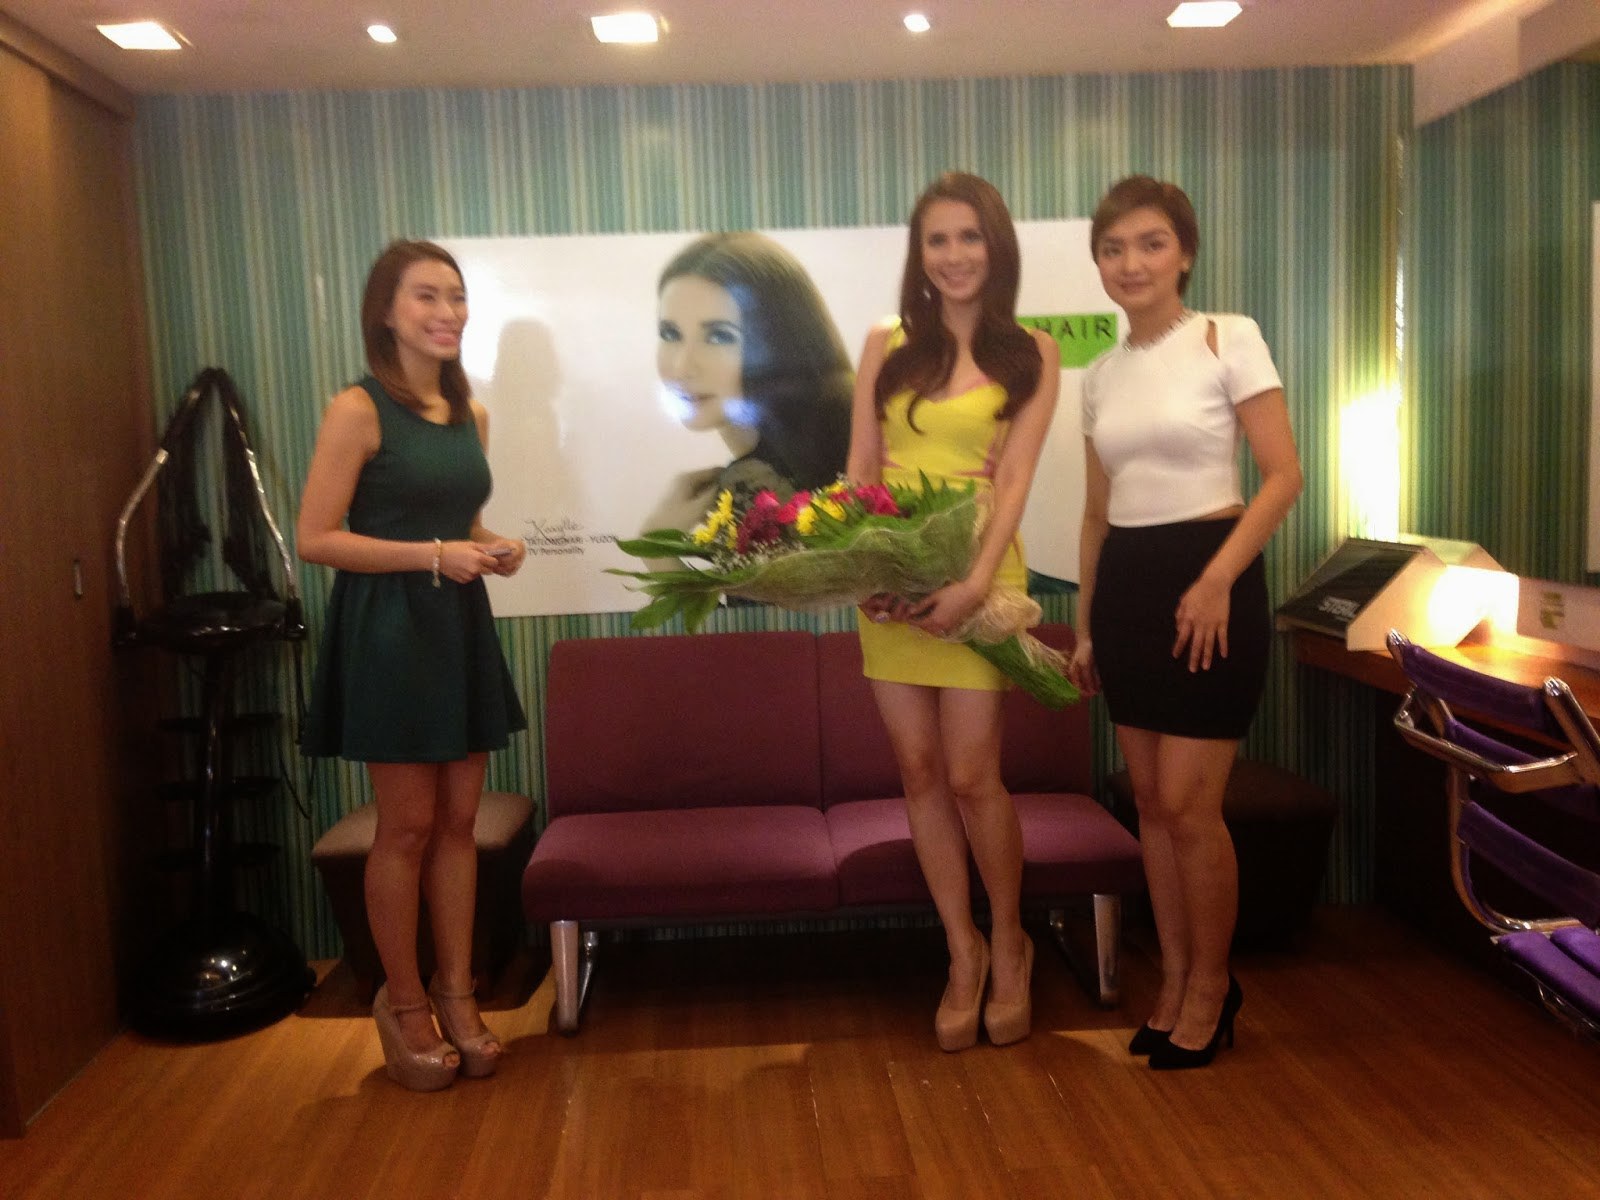 Karylle Is First Celebrity Endorser Of Status Salon Have A Model Habcf024sd After Power Outage Last Night The Has Branches In Tomas Morato Katipunan Eastwood San Juan Robinsons Galleria Plus Premiere Acropolis Makati And Banawe